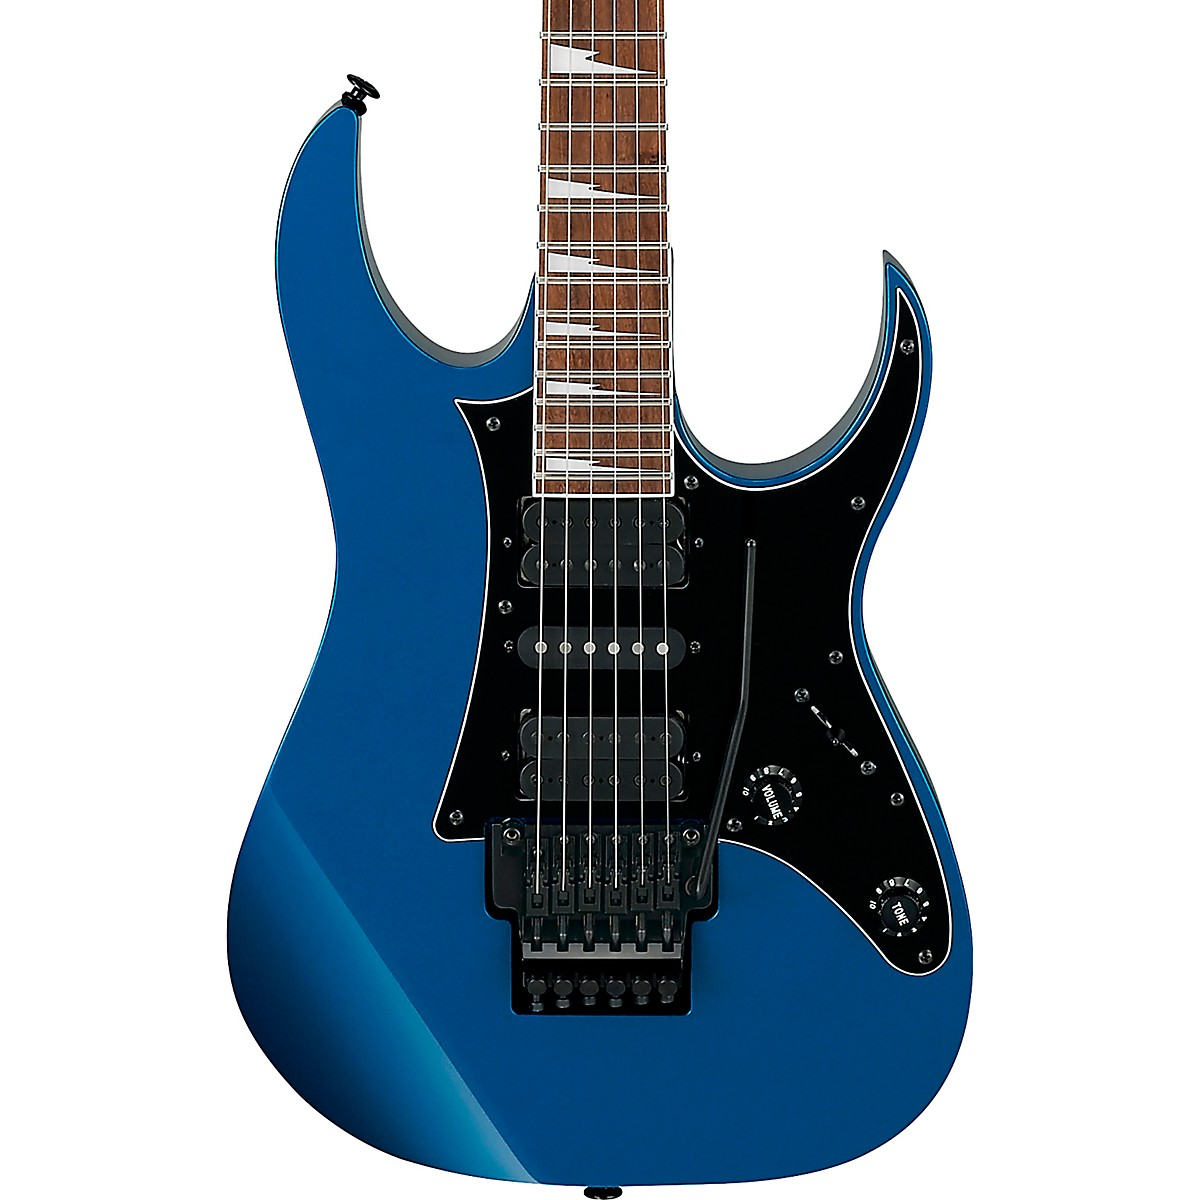 Ibanez RG550DX Genesis Collection Electric Guitar